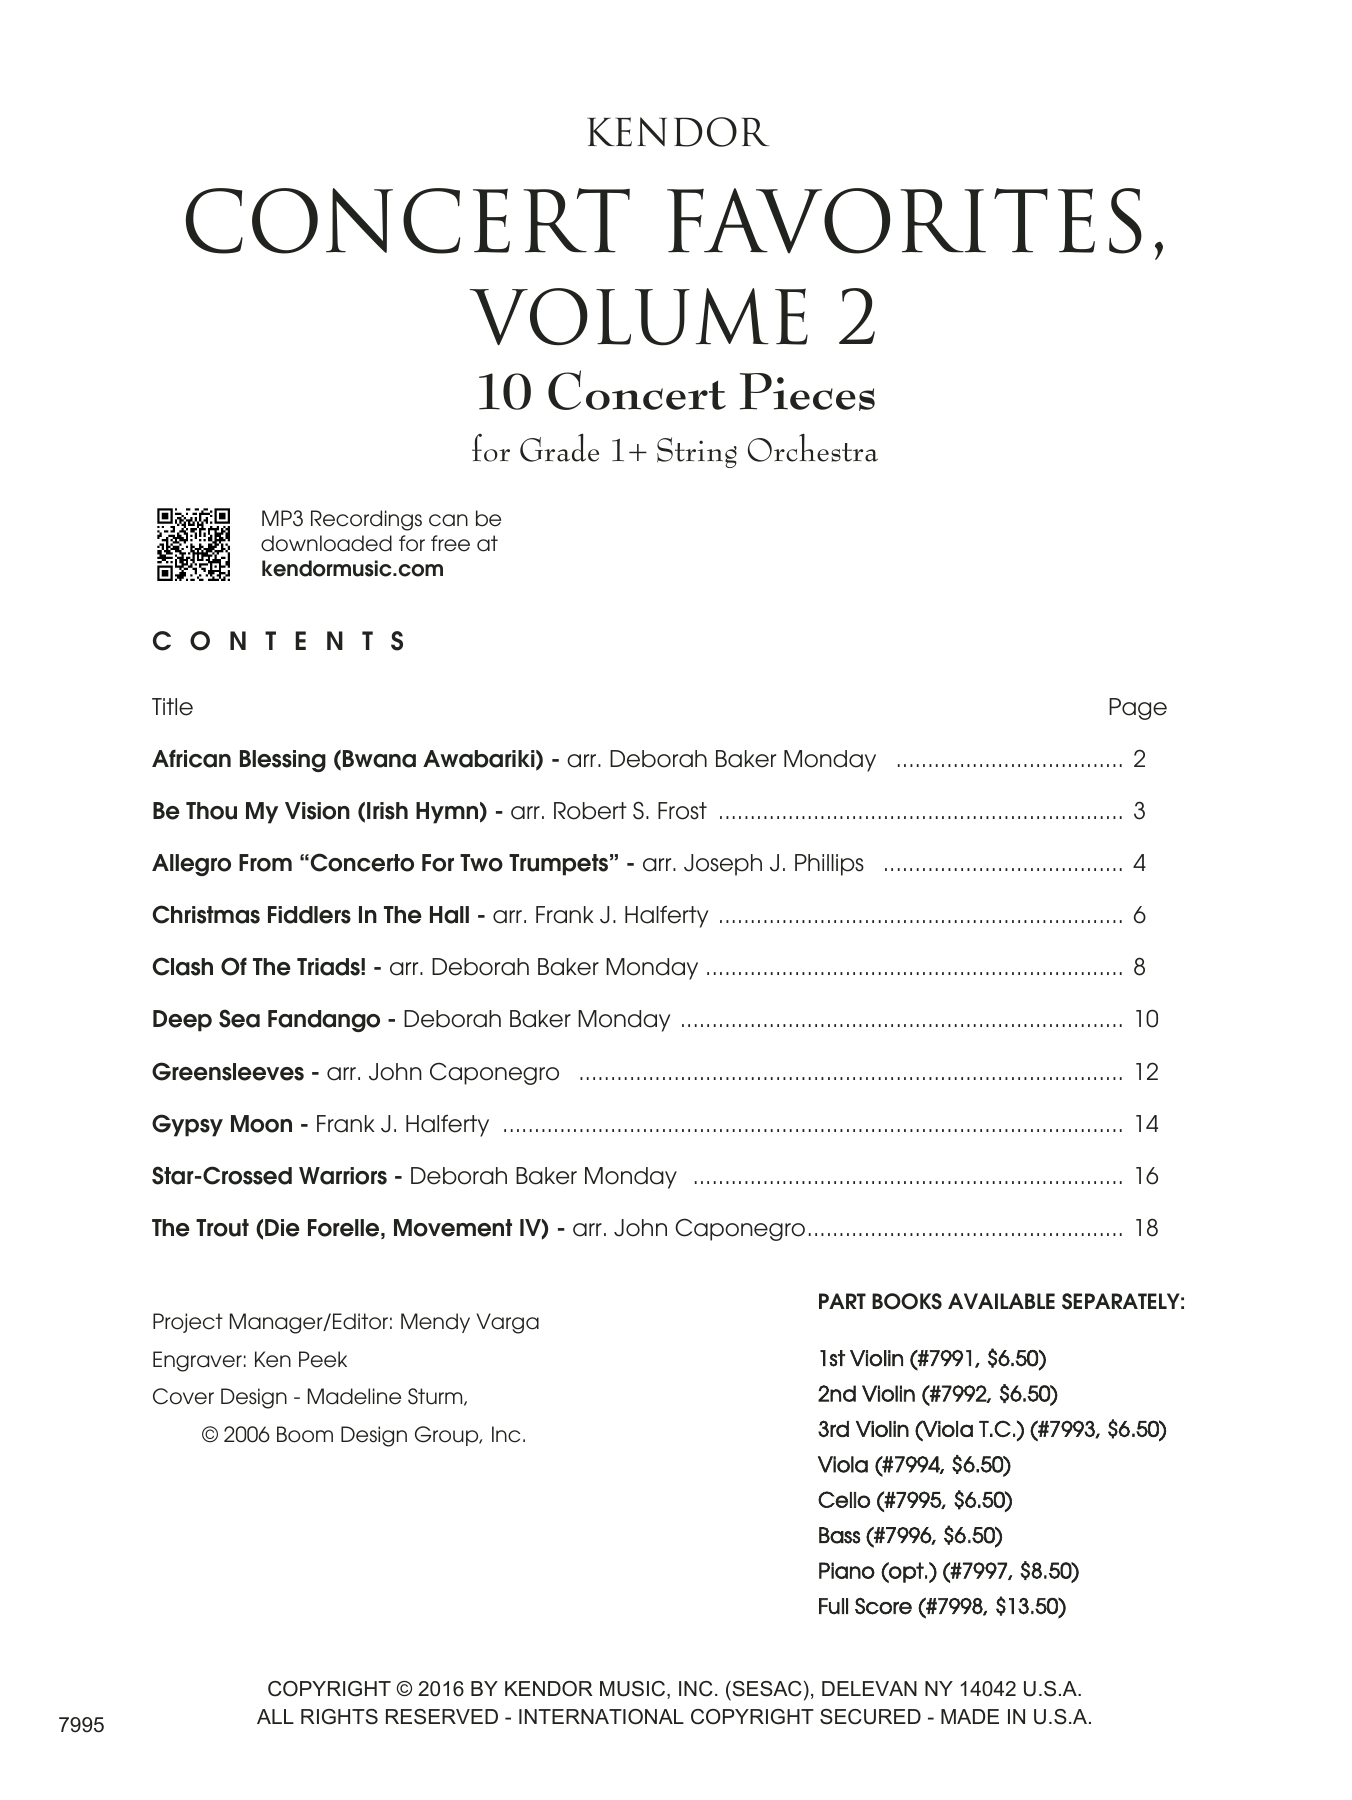 Kendor Concert Favorites, Volume 2 - Cello - Cello